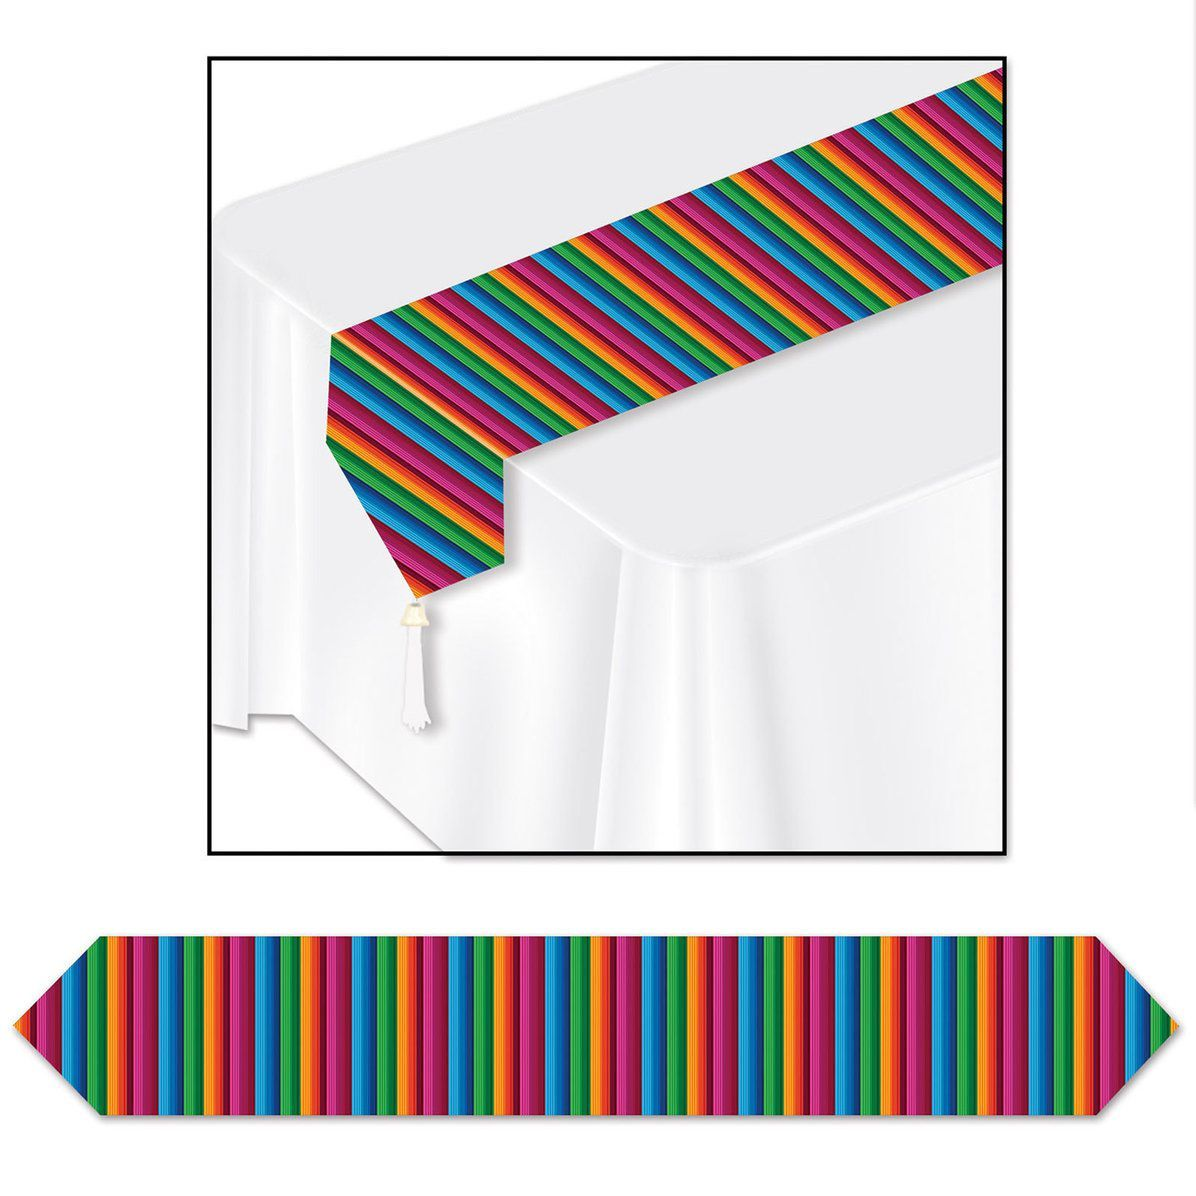 Fiesta Printed Table Runner Printed Table Runner Paper Table Runner Fiesta Table